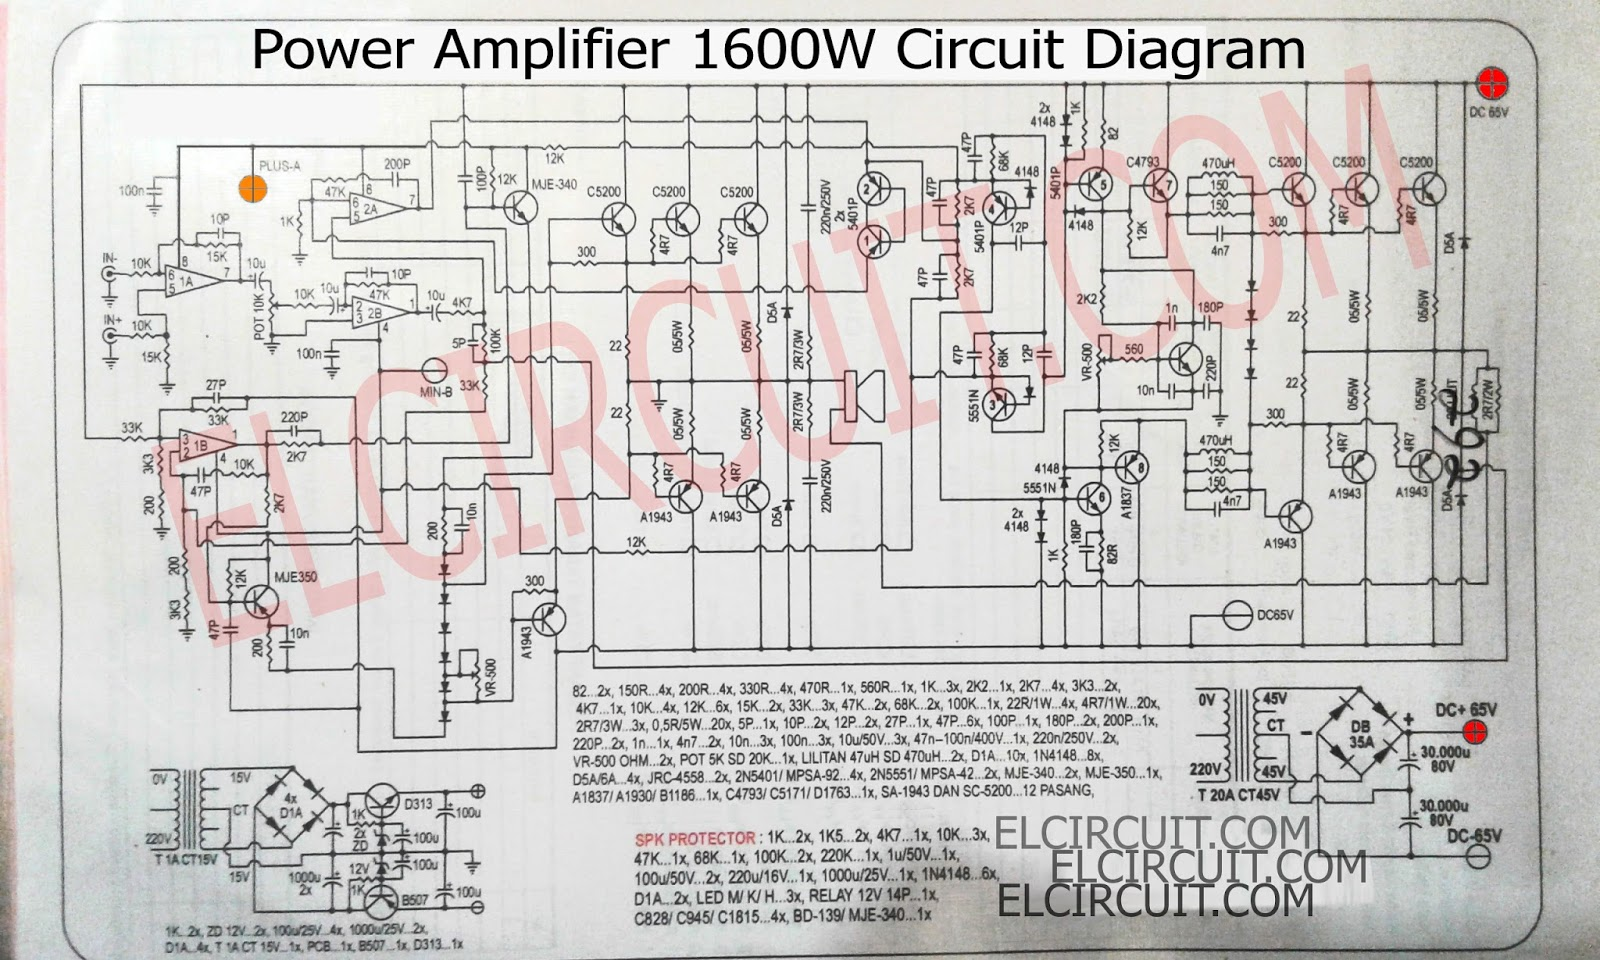 1600w High Power Amplifier Circuit Complete Pcb Layout